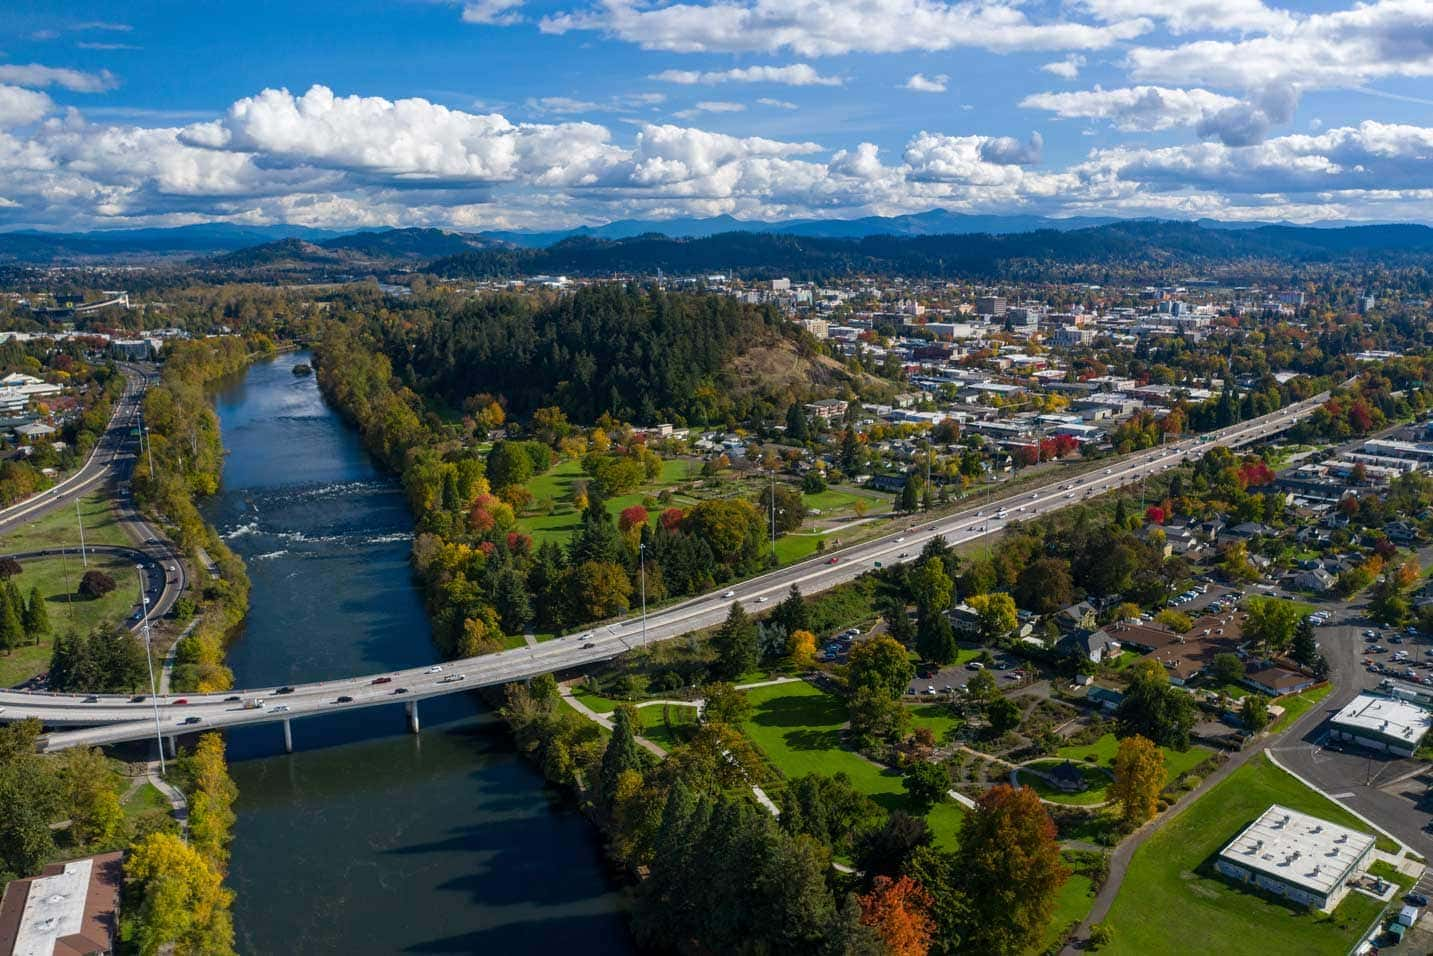 Aerial photo of Eugene and waterway.